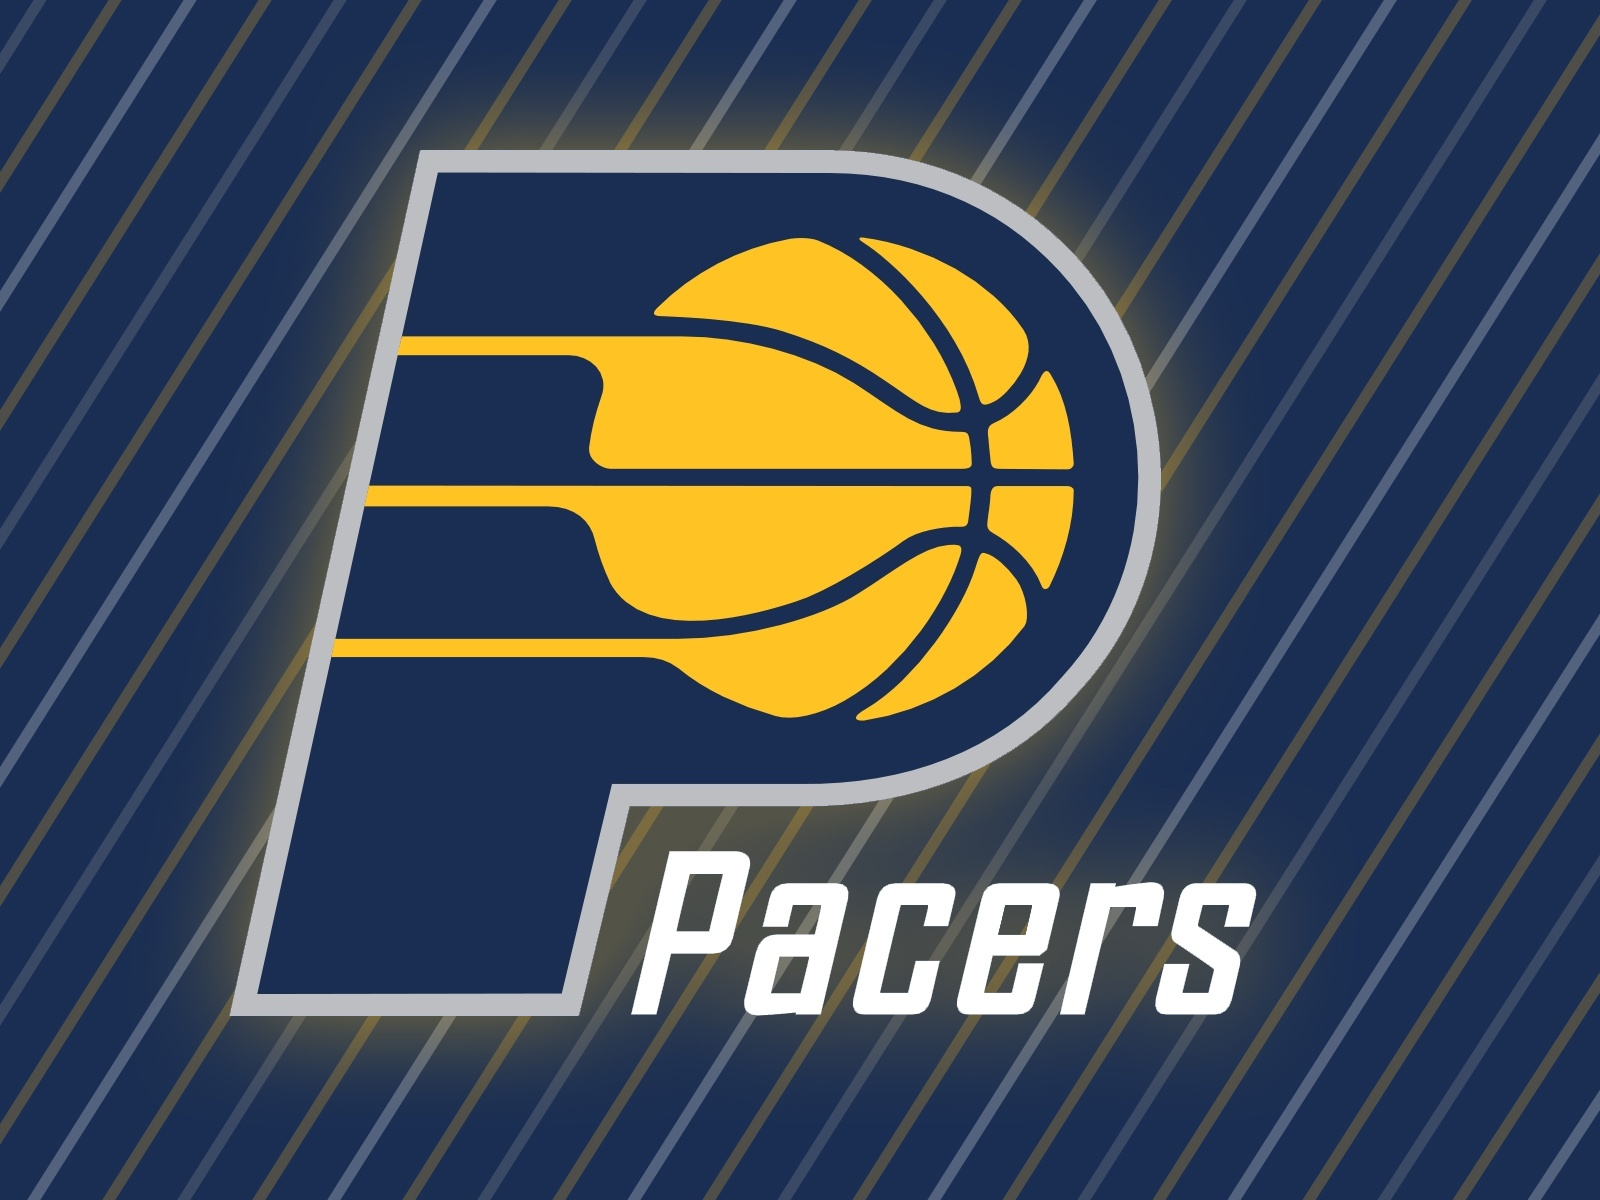 INDIANA PACERS nba basketball 32 wallpaper 1600x1200 227068 1600x1200